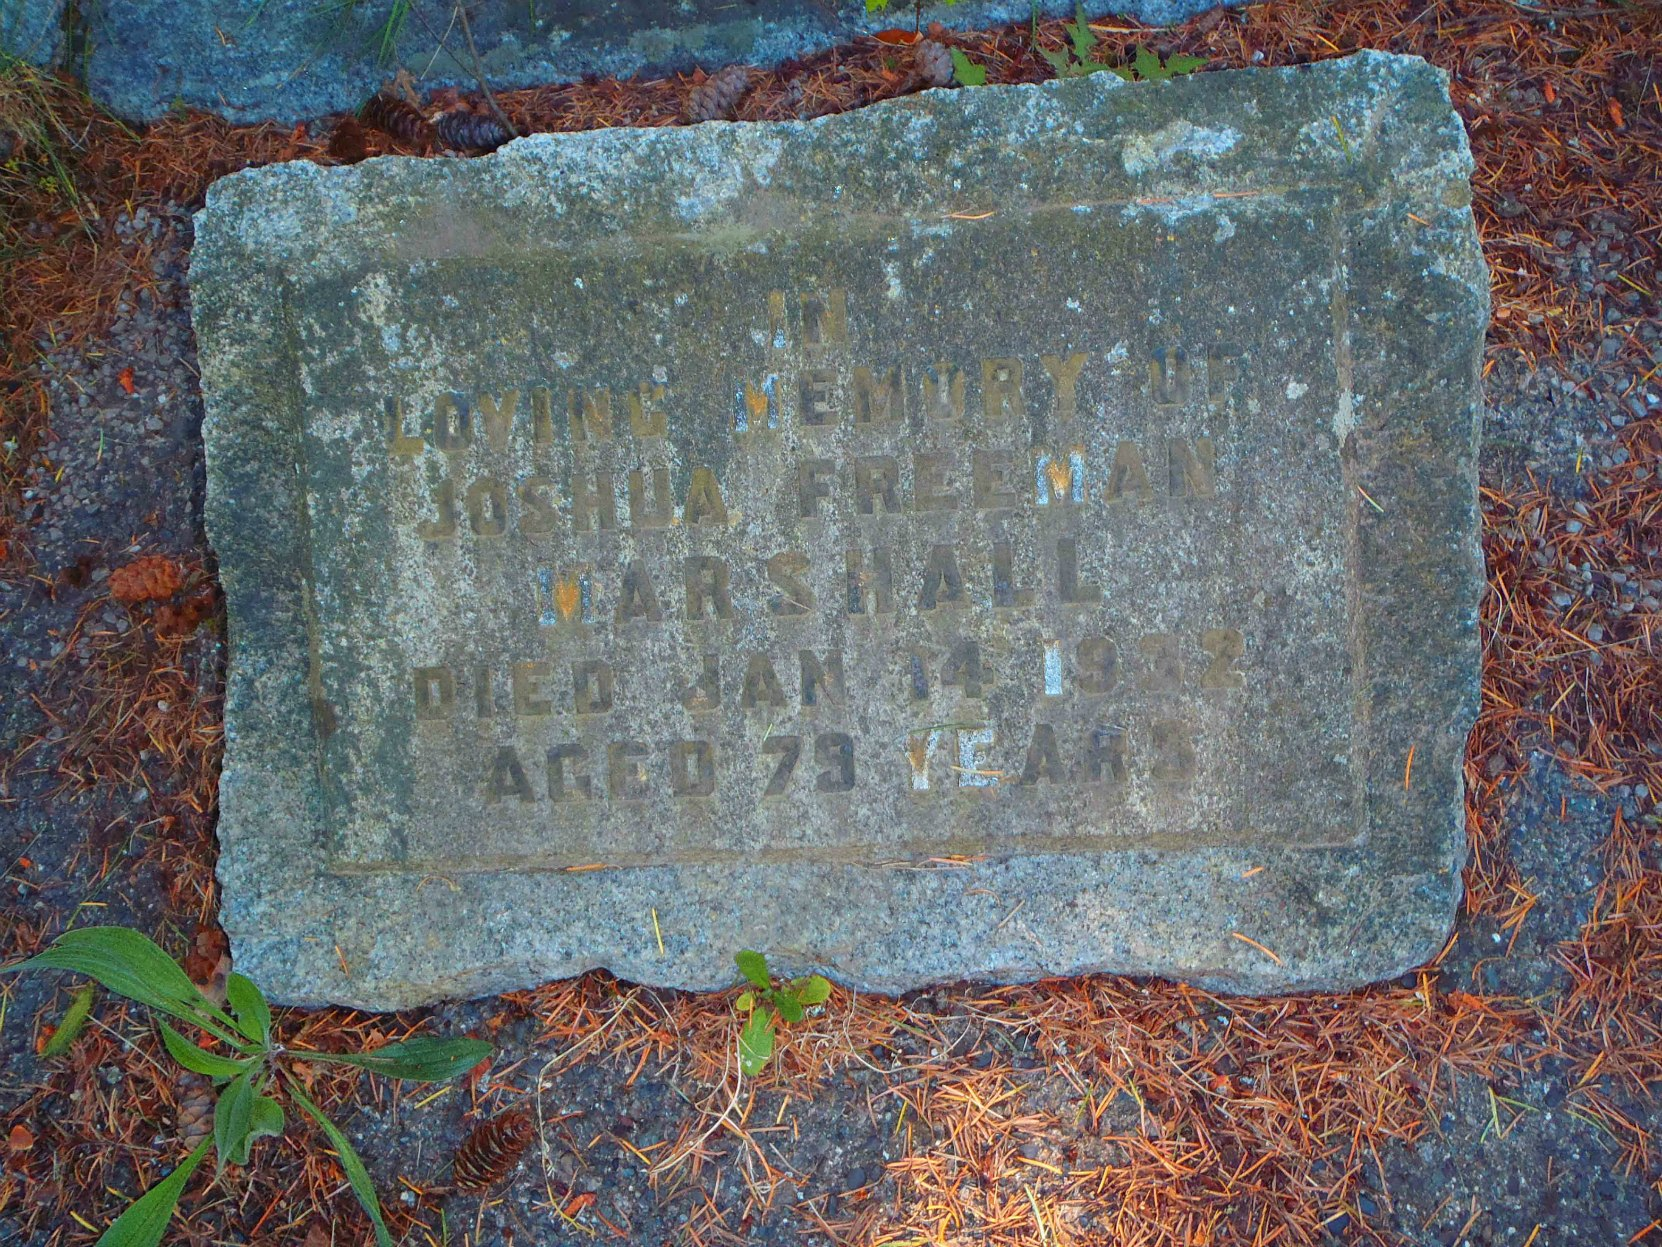 Joshua Freeman Marshall headstone, Chemainus Cemetery, Chemainus, B.C. (photo by Temple Lodge No. 33 Historian)